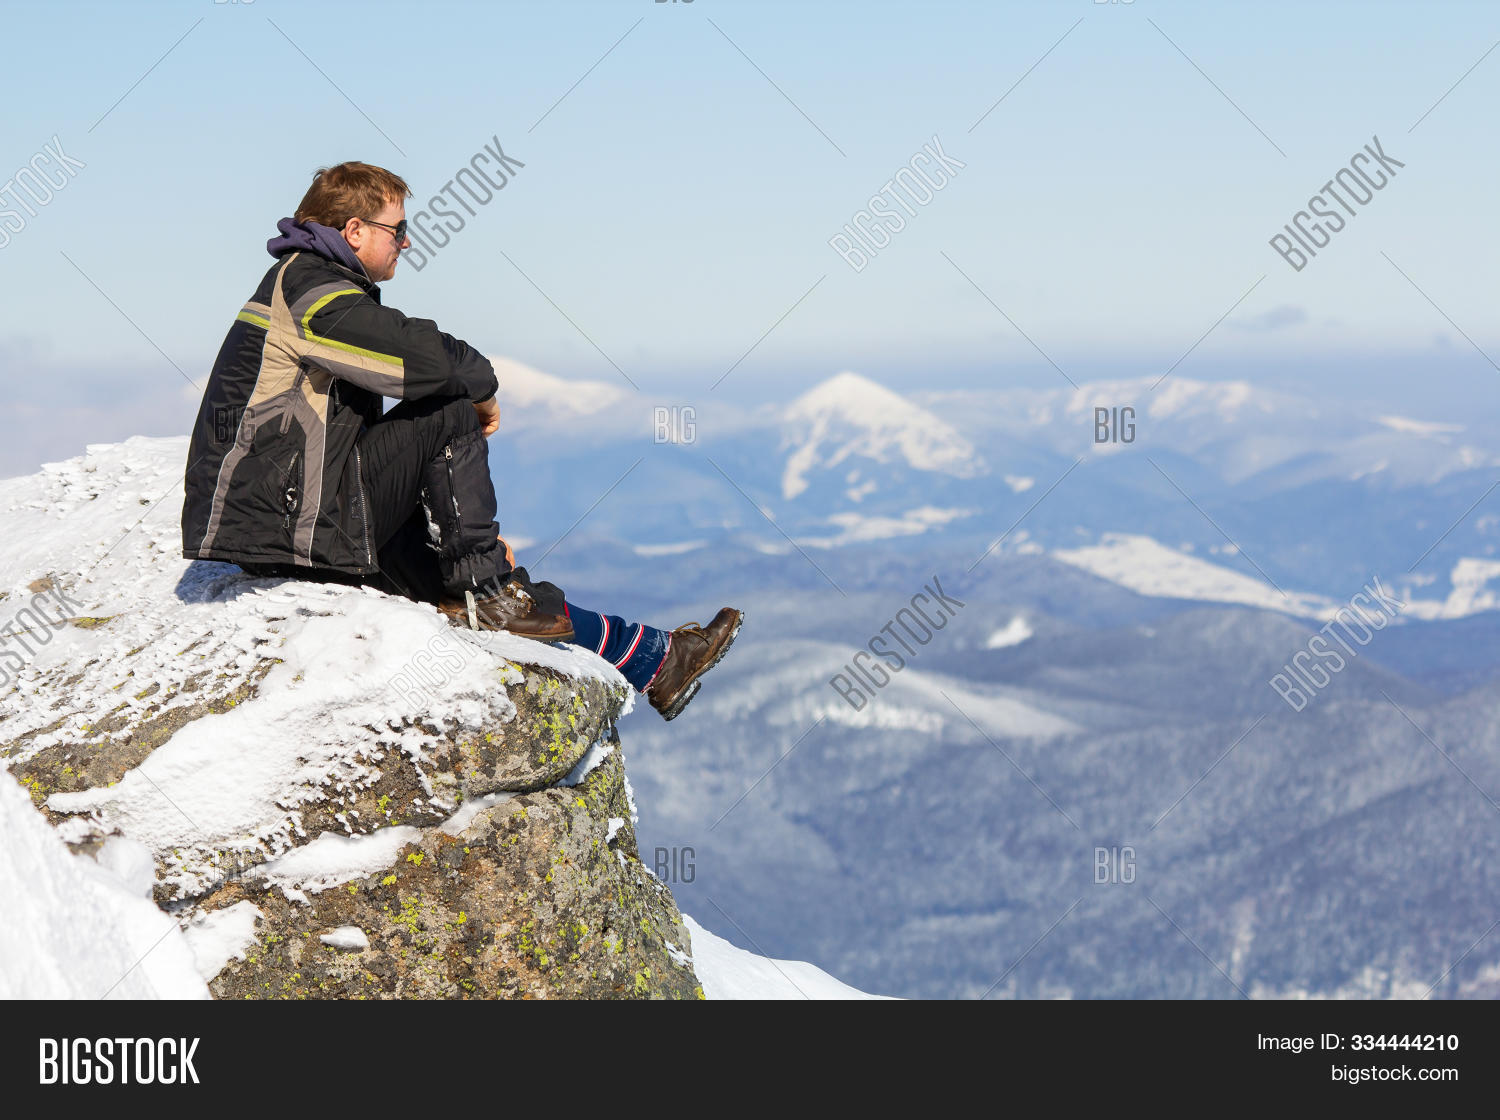 achievement,adventure,alone,blue,cliff,climb,climber,climbing,cold,expedition,exploration,explore,extreme,freedom,frost,high,hike,hiker,hiking,horizon,journey,landscape,lifestyle,man,mountain,mountaineer,mountaineering,nature,one,outdoor,peak,people,scenic,snow,snowy,sport,standing,success,successful,summit,top,tourism,tourist,travel,traveler,traveller,view,wanderlust,winter